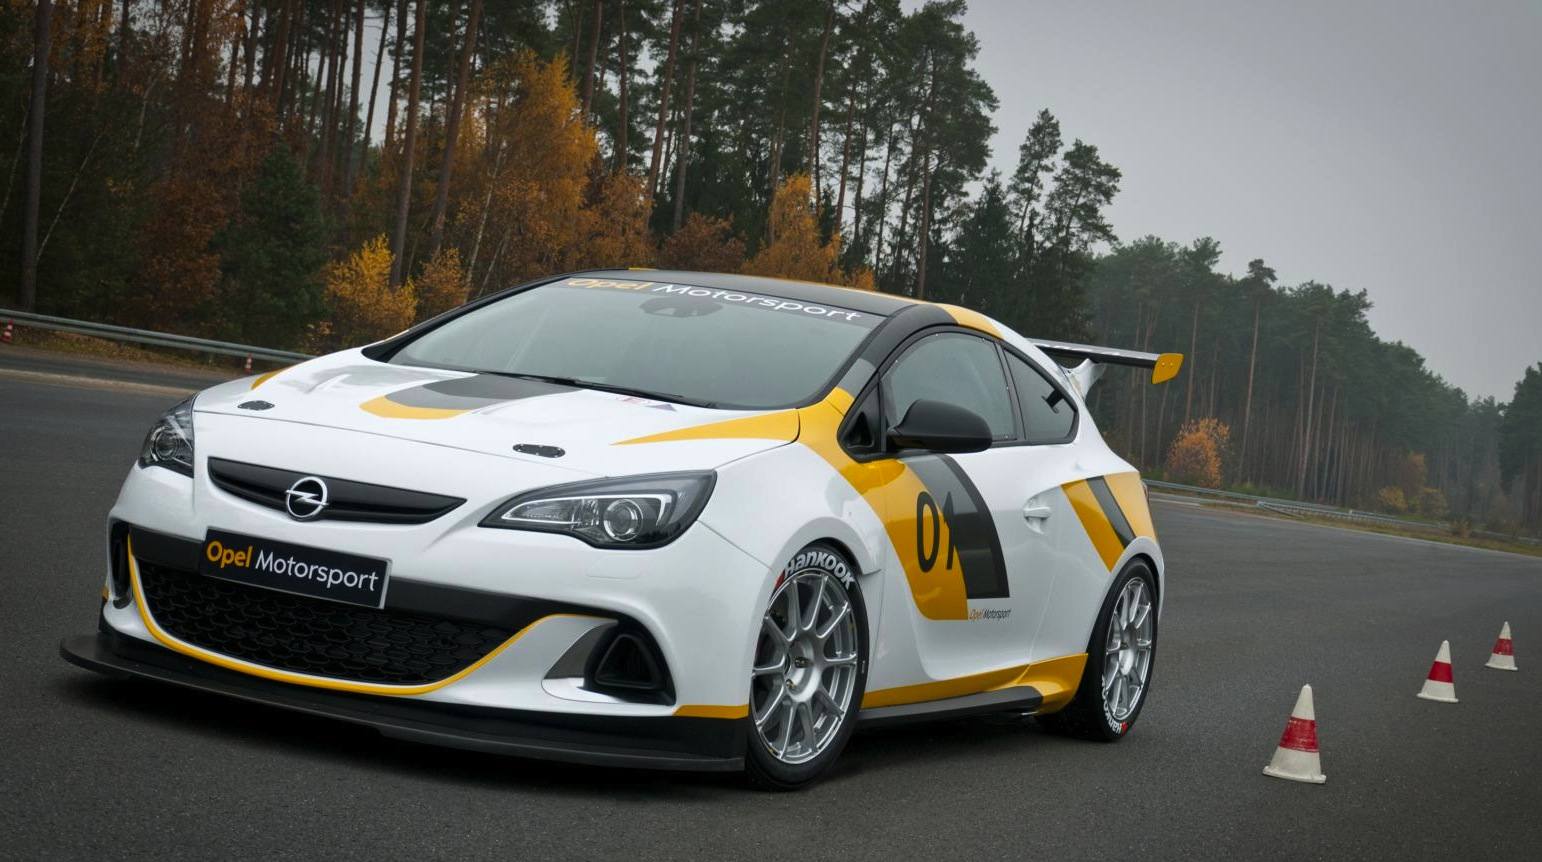 Gt Race Car Wallpaper Opel Astra Opc To Race Adam To Rally In 2013 Photos